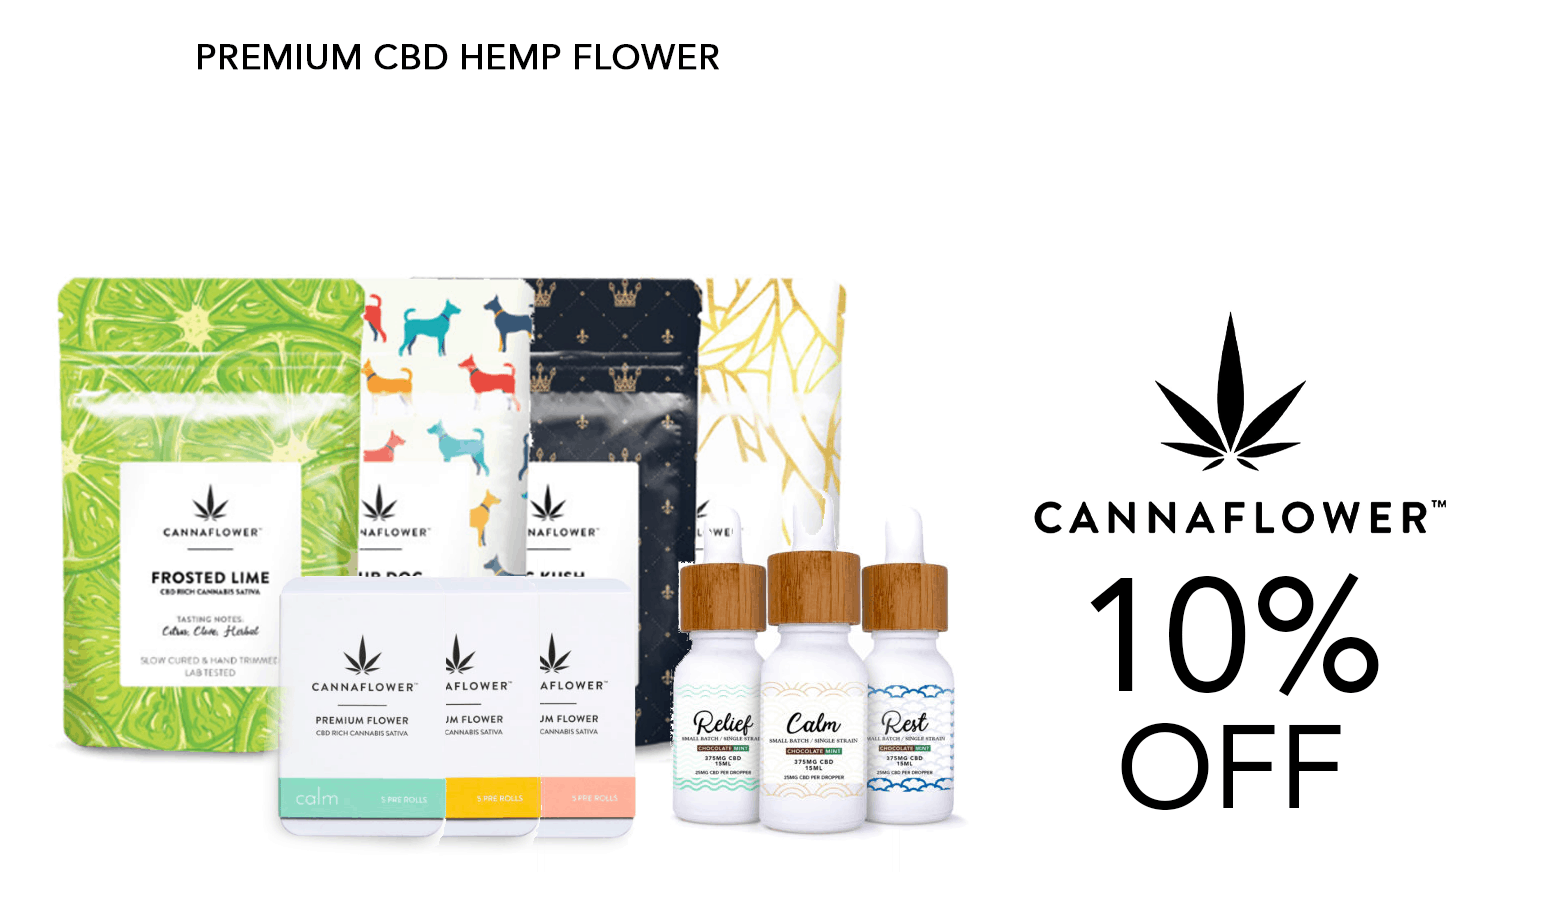 Canna Flower CBD Coupon Code Offer Website